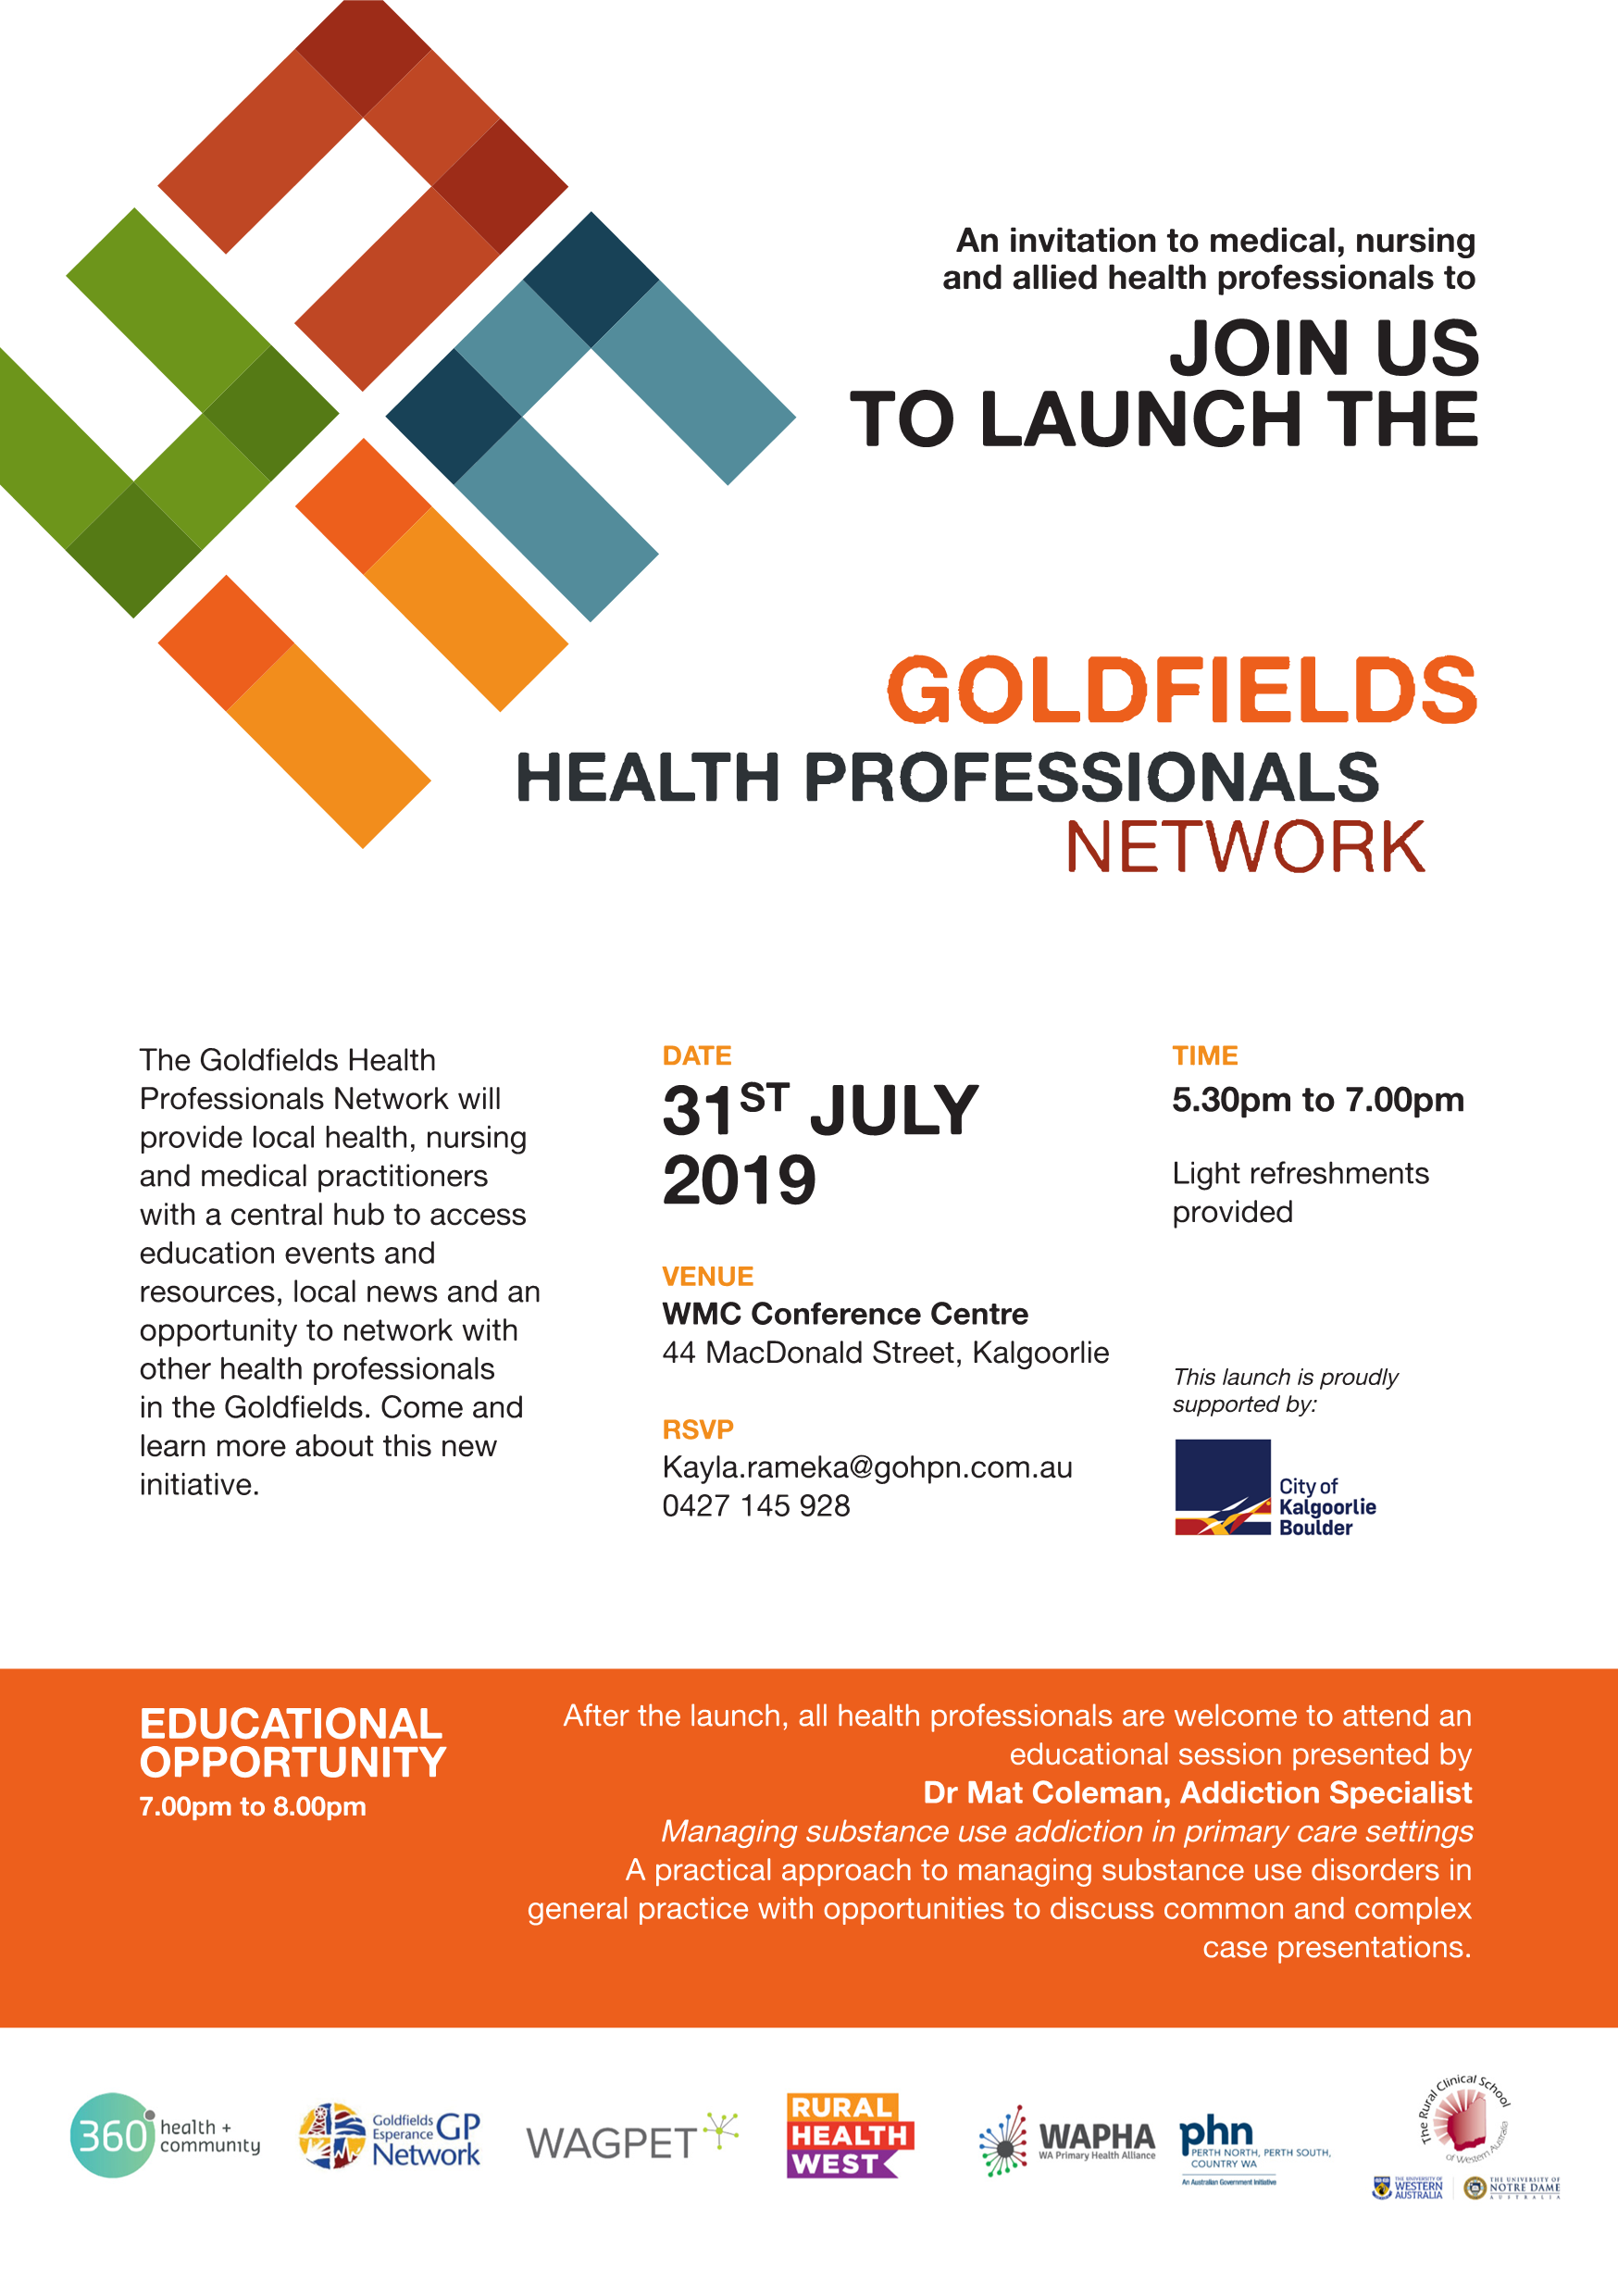 Gohpn launch invite 31.07.2019